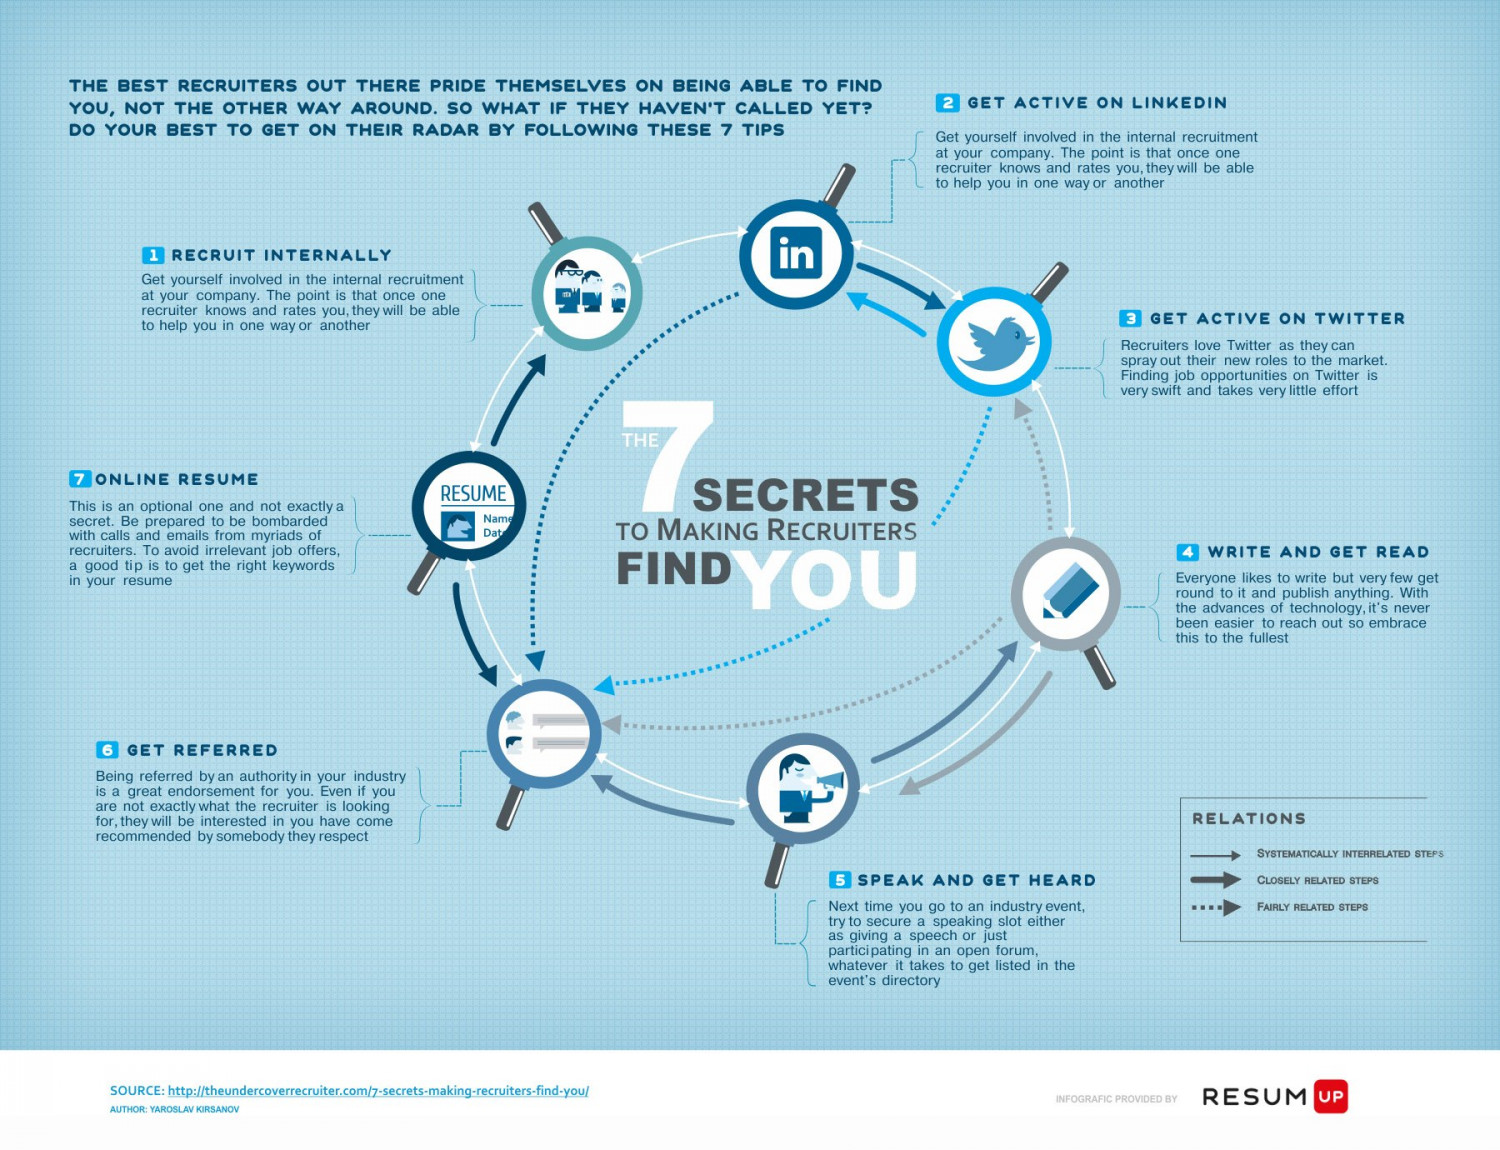 7 secrets to making recruiters find you Infographic